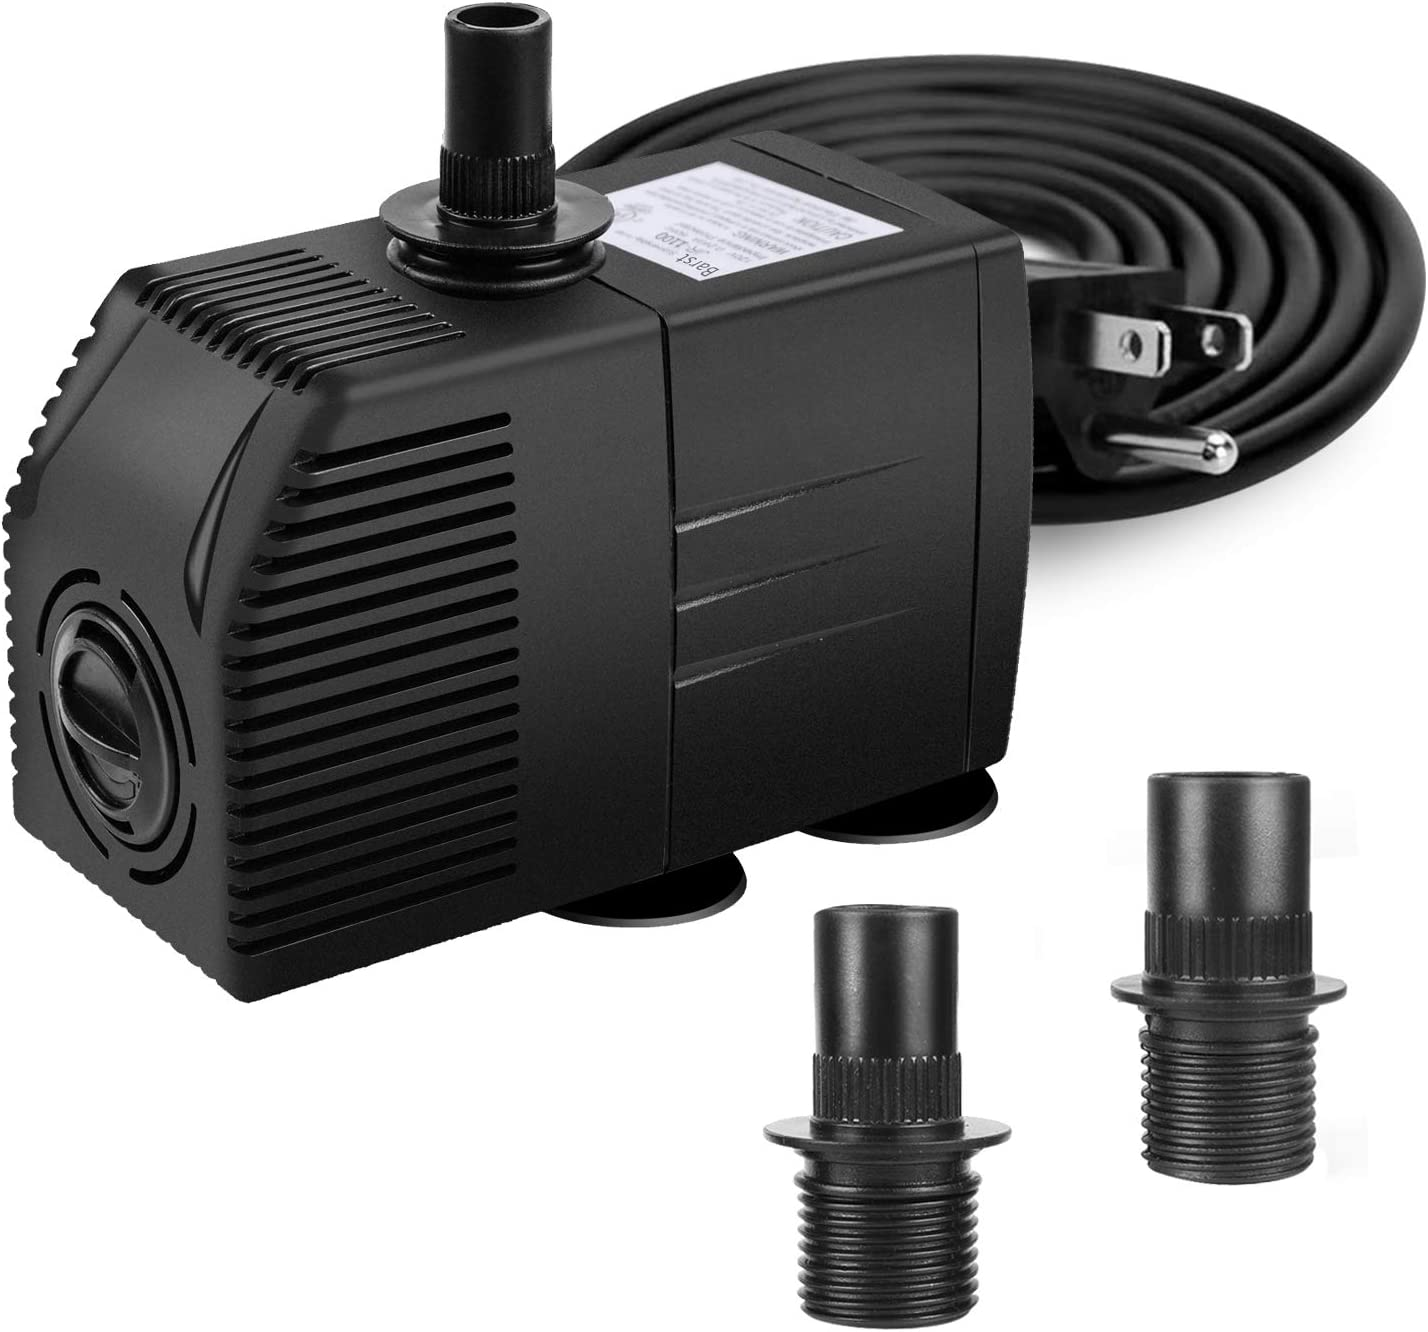 BARST 290GPH Submersible Water Pump with Filter(1100L/H, 16W), Ultra Quiet Aquarium Pump for Fountains, Pool, Fish Tank, Pond, Statuary Fountain Pump with 4 Strong Suction Cups,3 Nozzles: Home Improvement